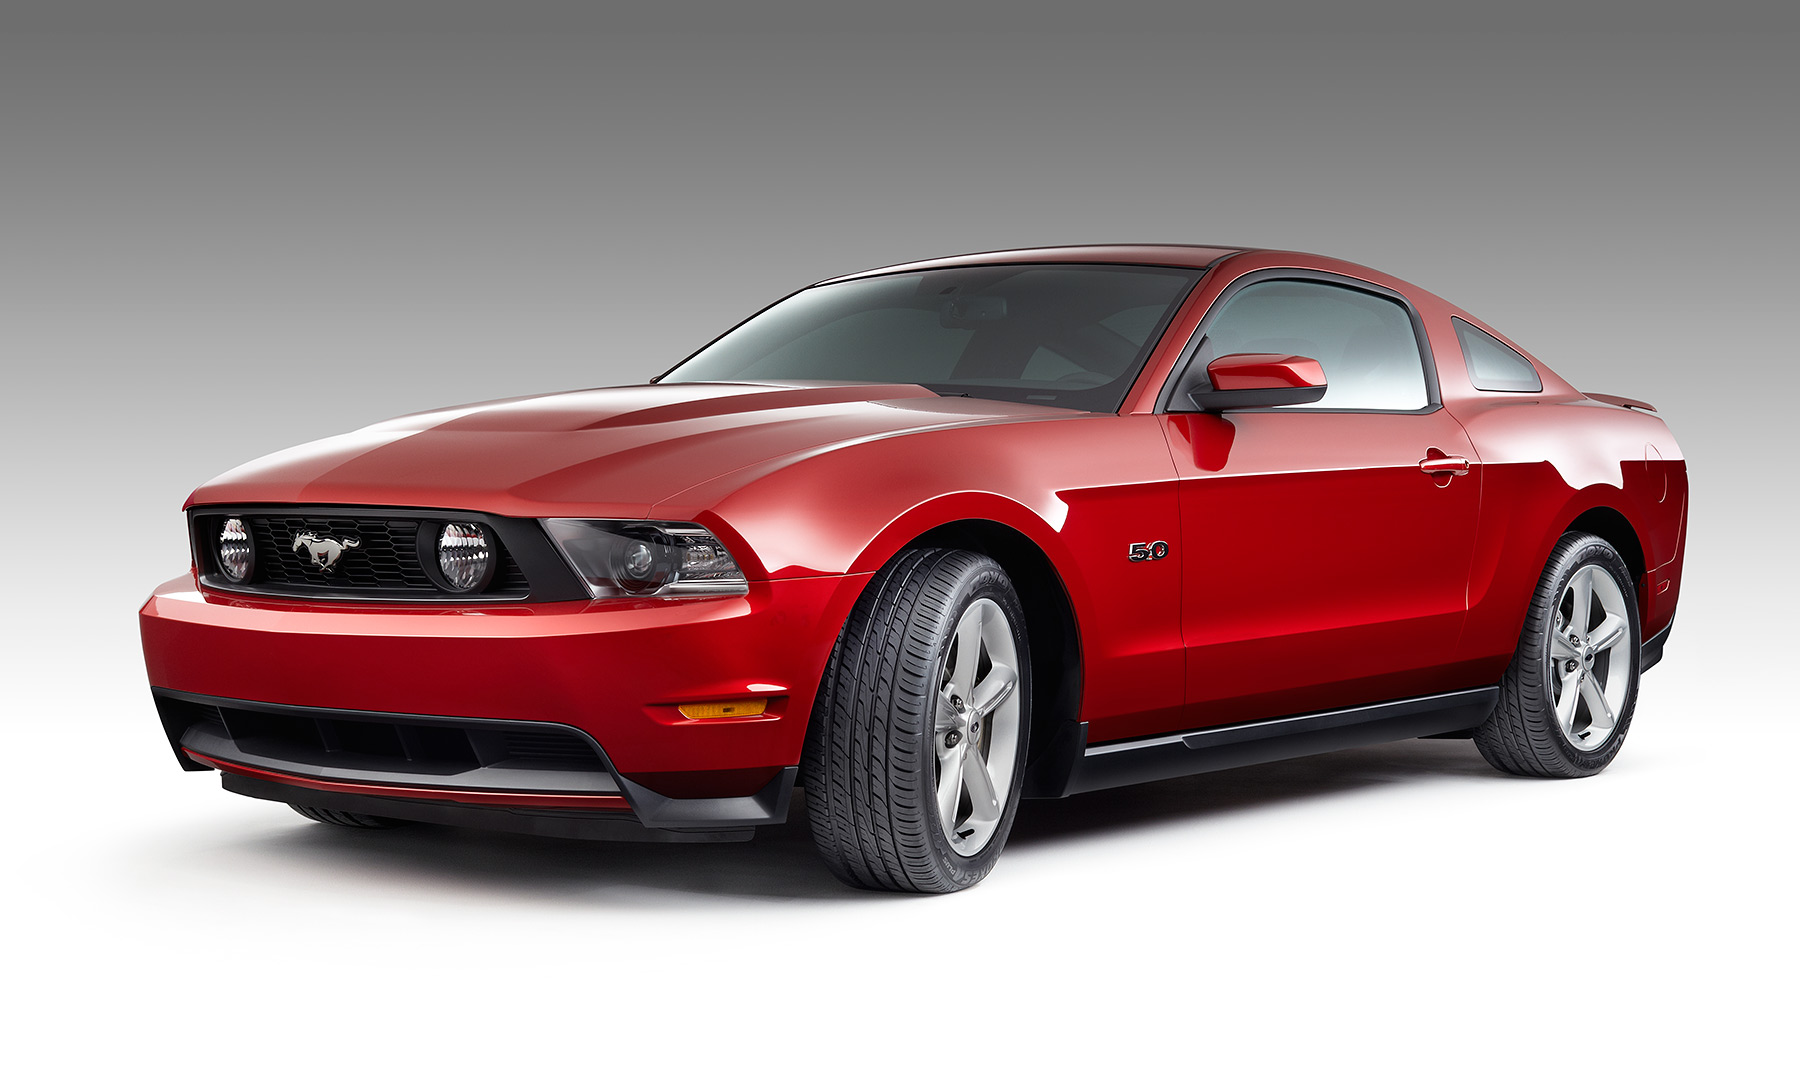 Red Mustang Automotive Photography | Dovis Bird Agency Reps